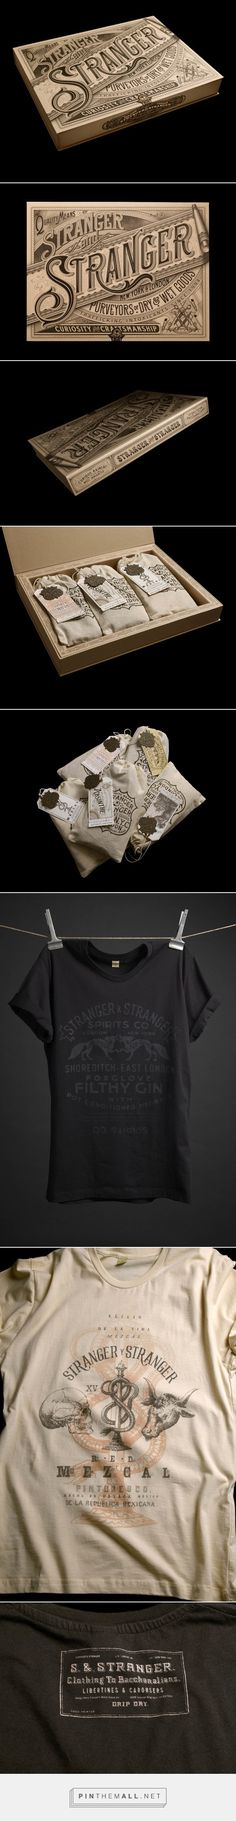 Vintage T-Shirt Packaging Design by Stranger & Stranger Web Design, Label Design, Packaging Design, Branding Design, Packaging Ideas, Vintage T-shirts, Vintage Labels, Vintage Designs, Vintage Ideas